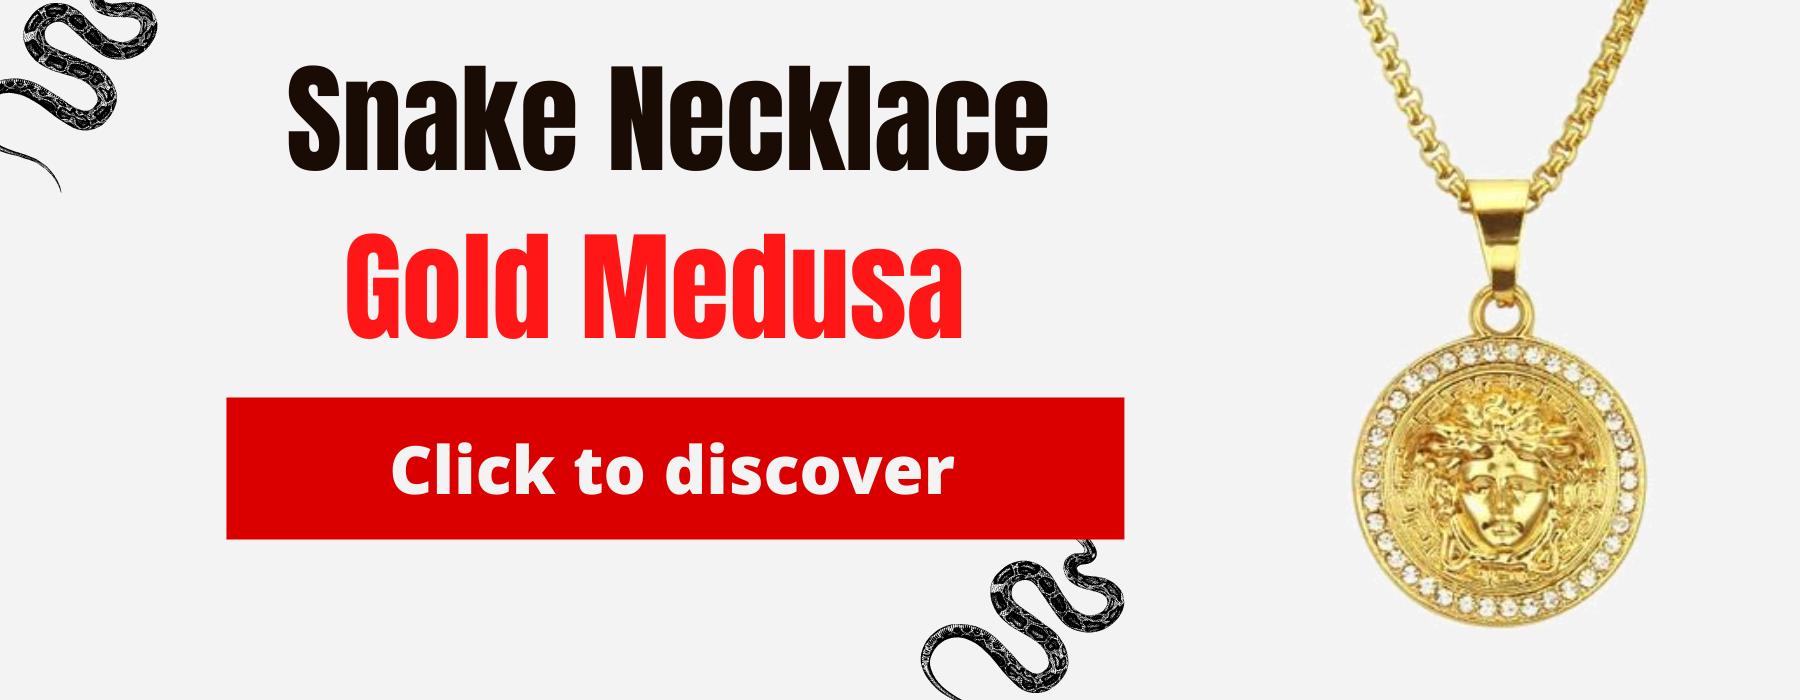 Gold Medusa Snake Necklace